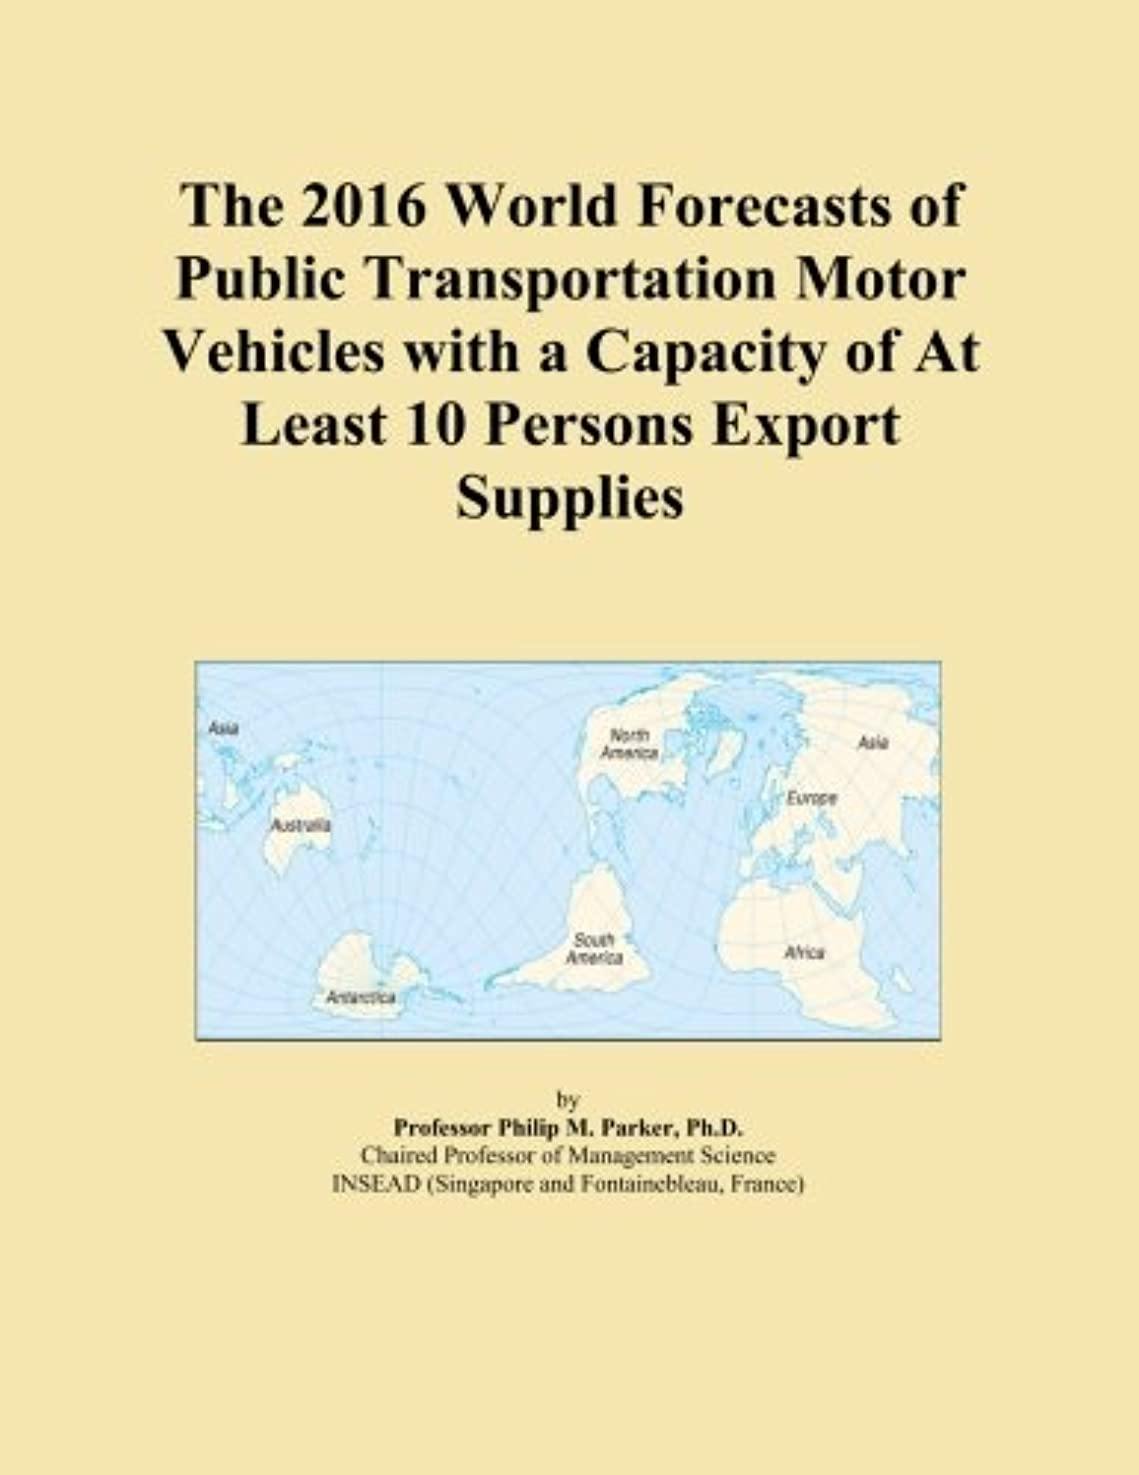 シェルター差し控える石灰岩The 2016 World Forecasts of Public Transportation Motor Vehicles with a Capacity of At Least 10 Persons Export Supplies